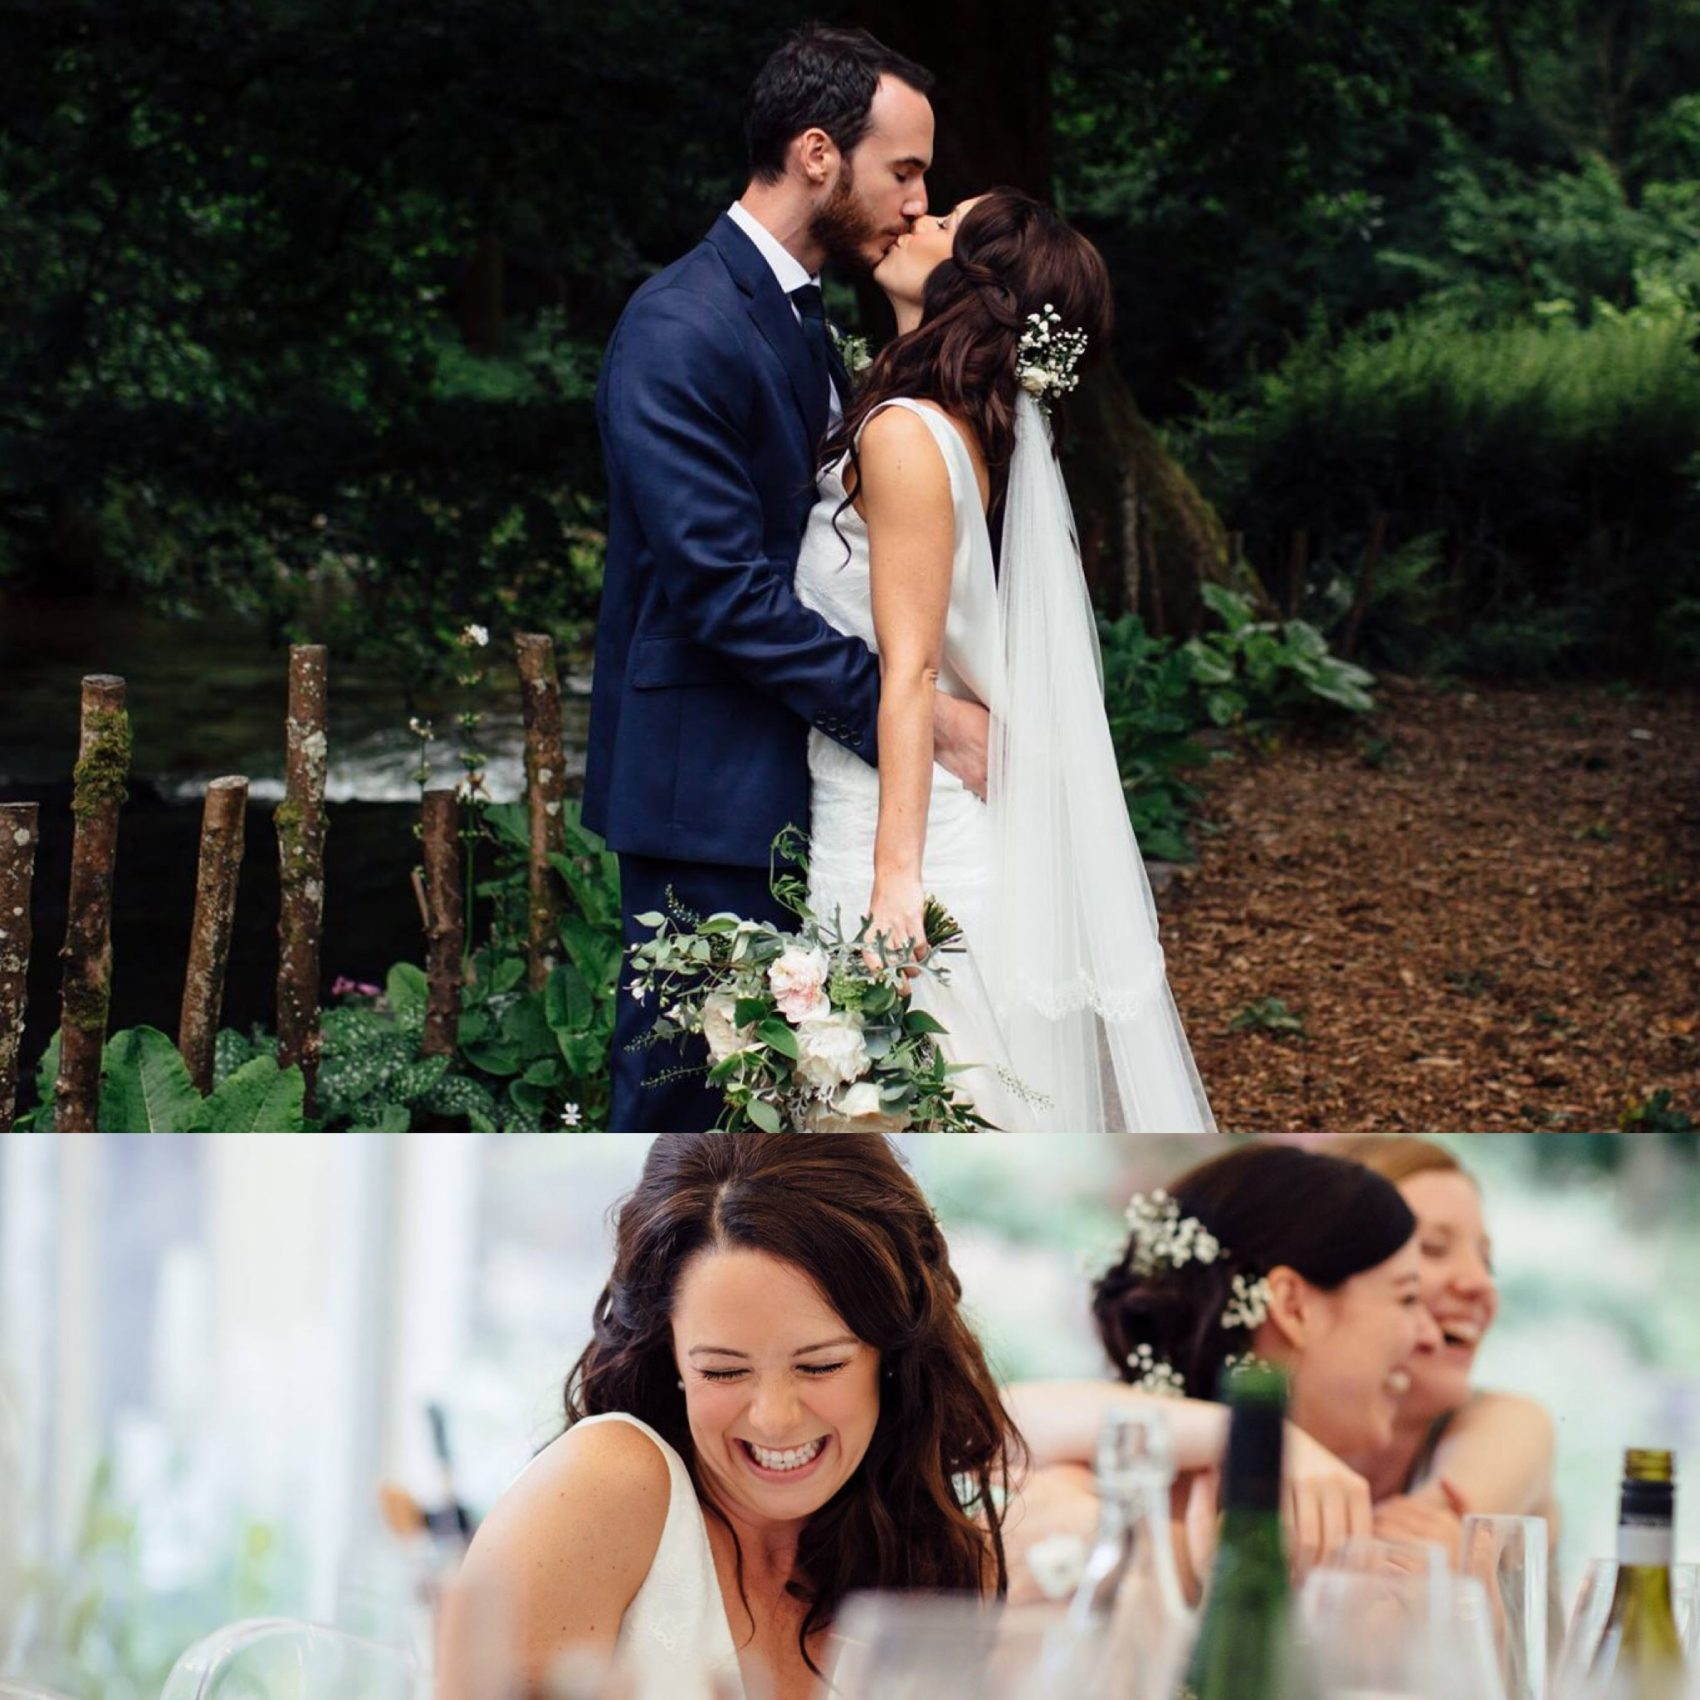 woodland, wedding, happy, smiles, couple, bride & groom, perspective, nature, flowers, ever after, lower grenofen,